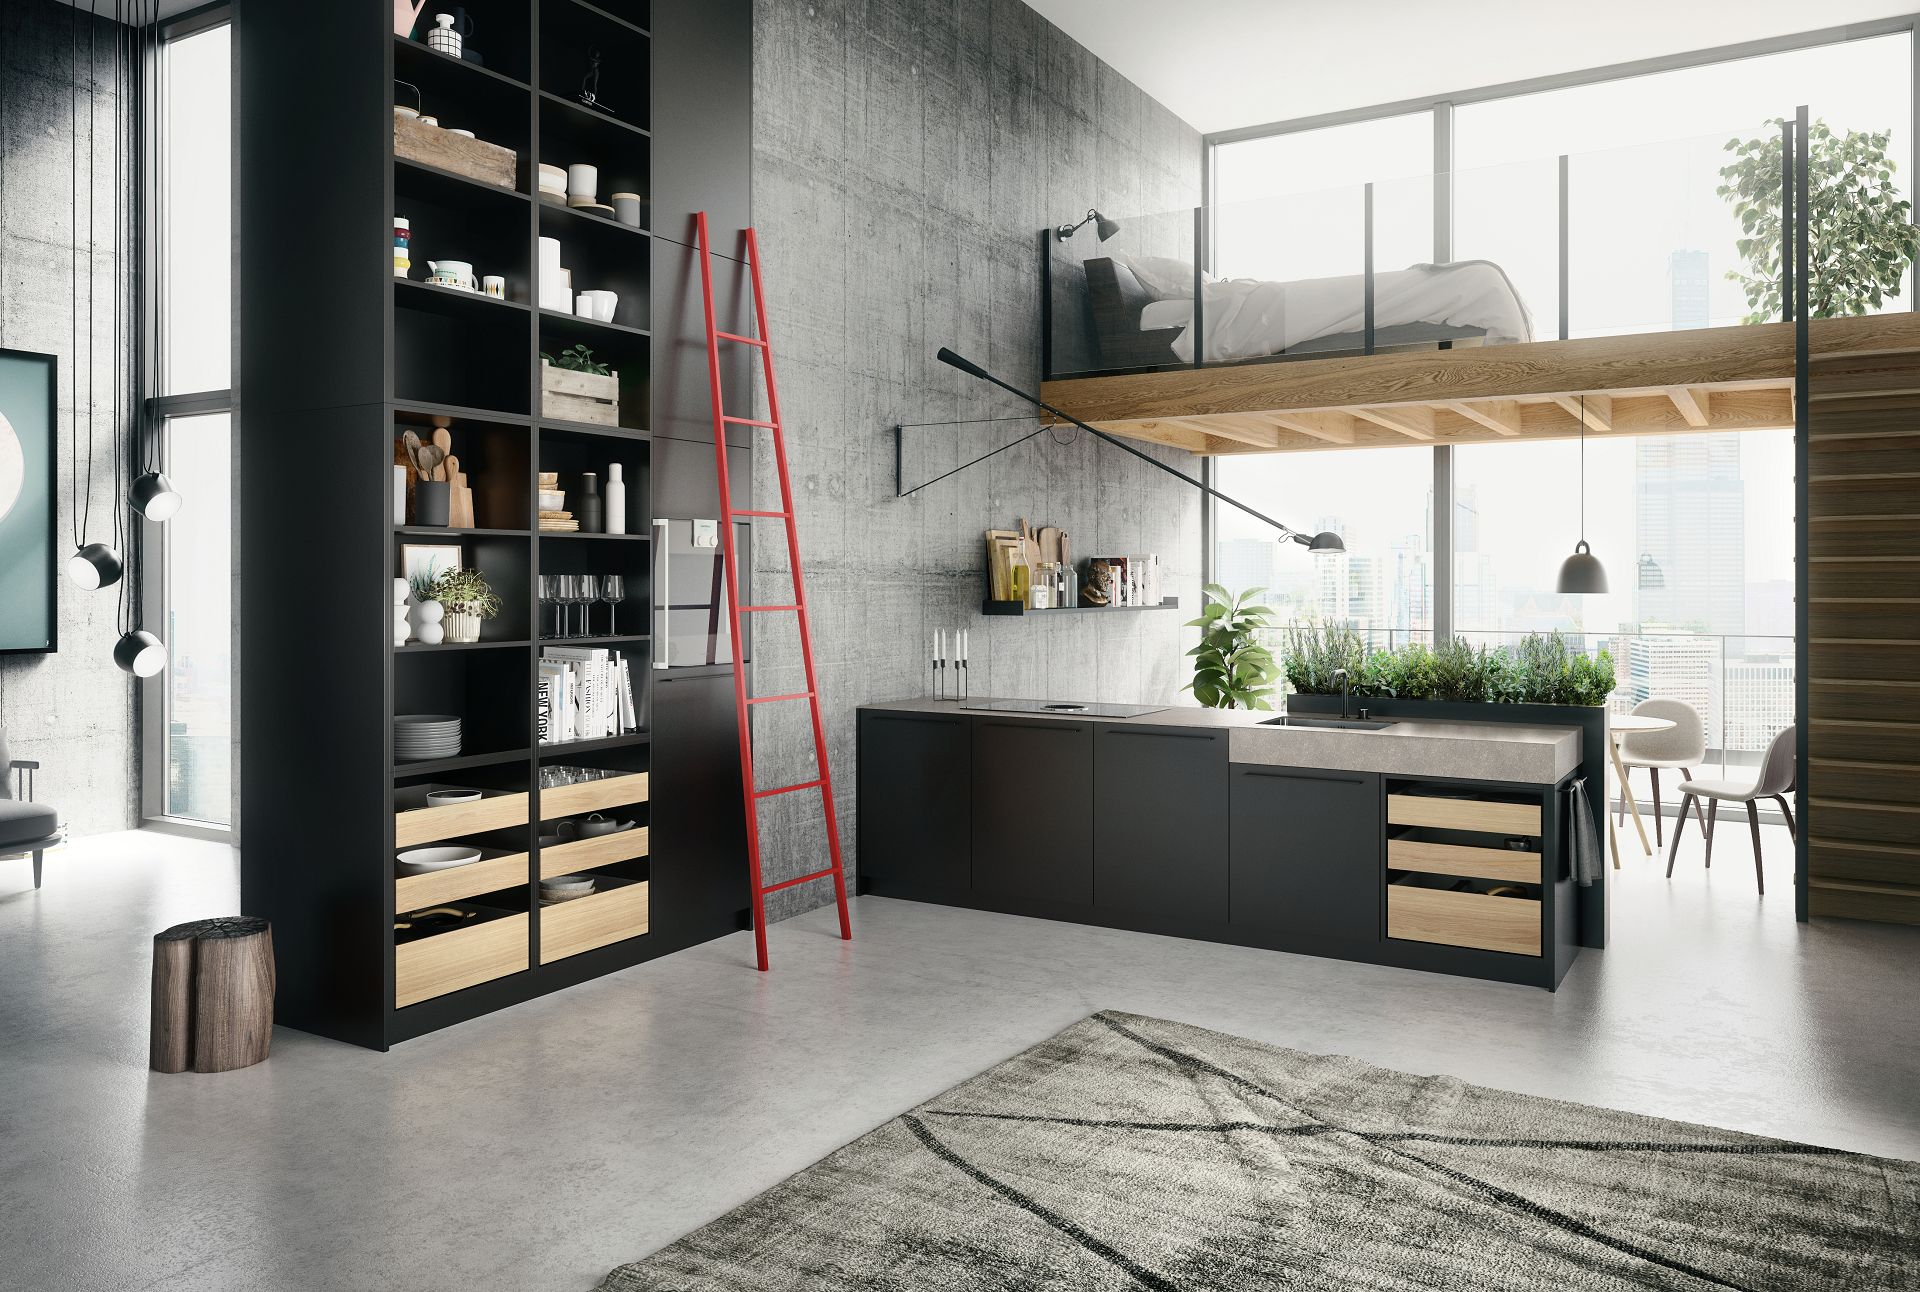 Small but Powerful Ideas for Urban Kitchen Design   SieMatic